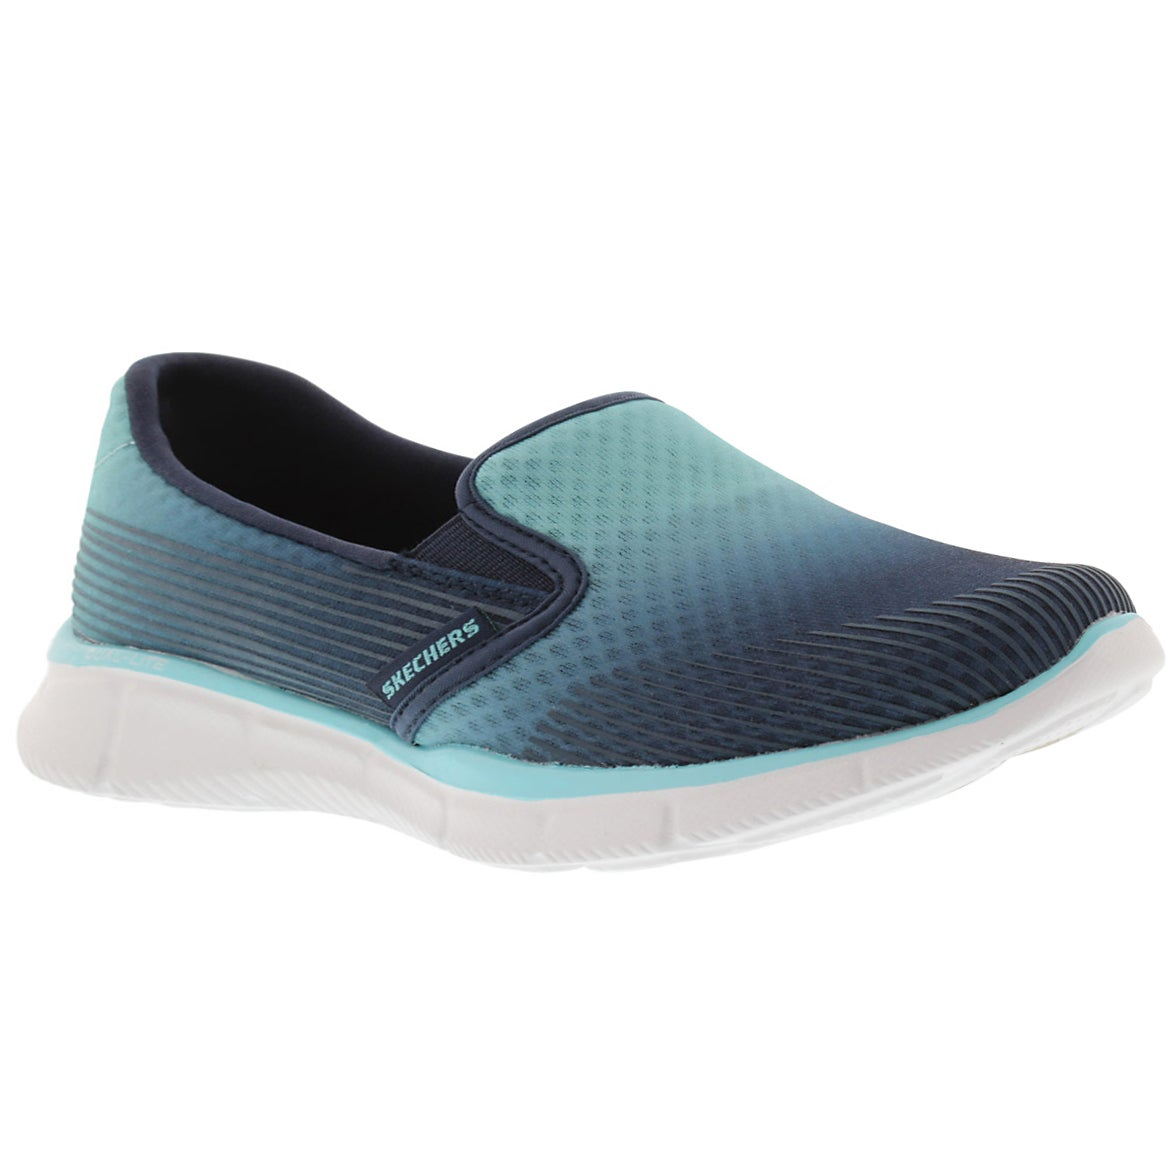 Lds Space Out blue/nvy slip on sneaker